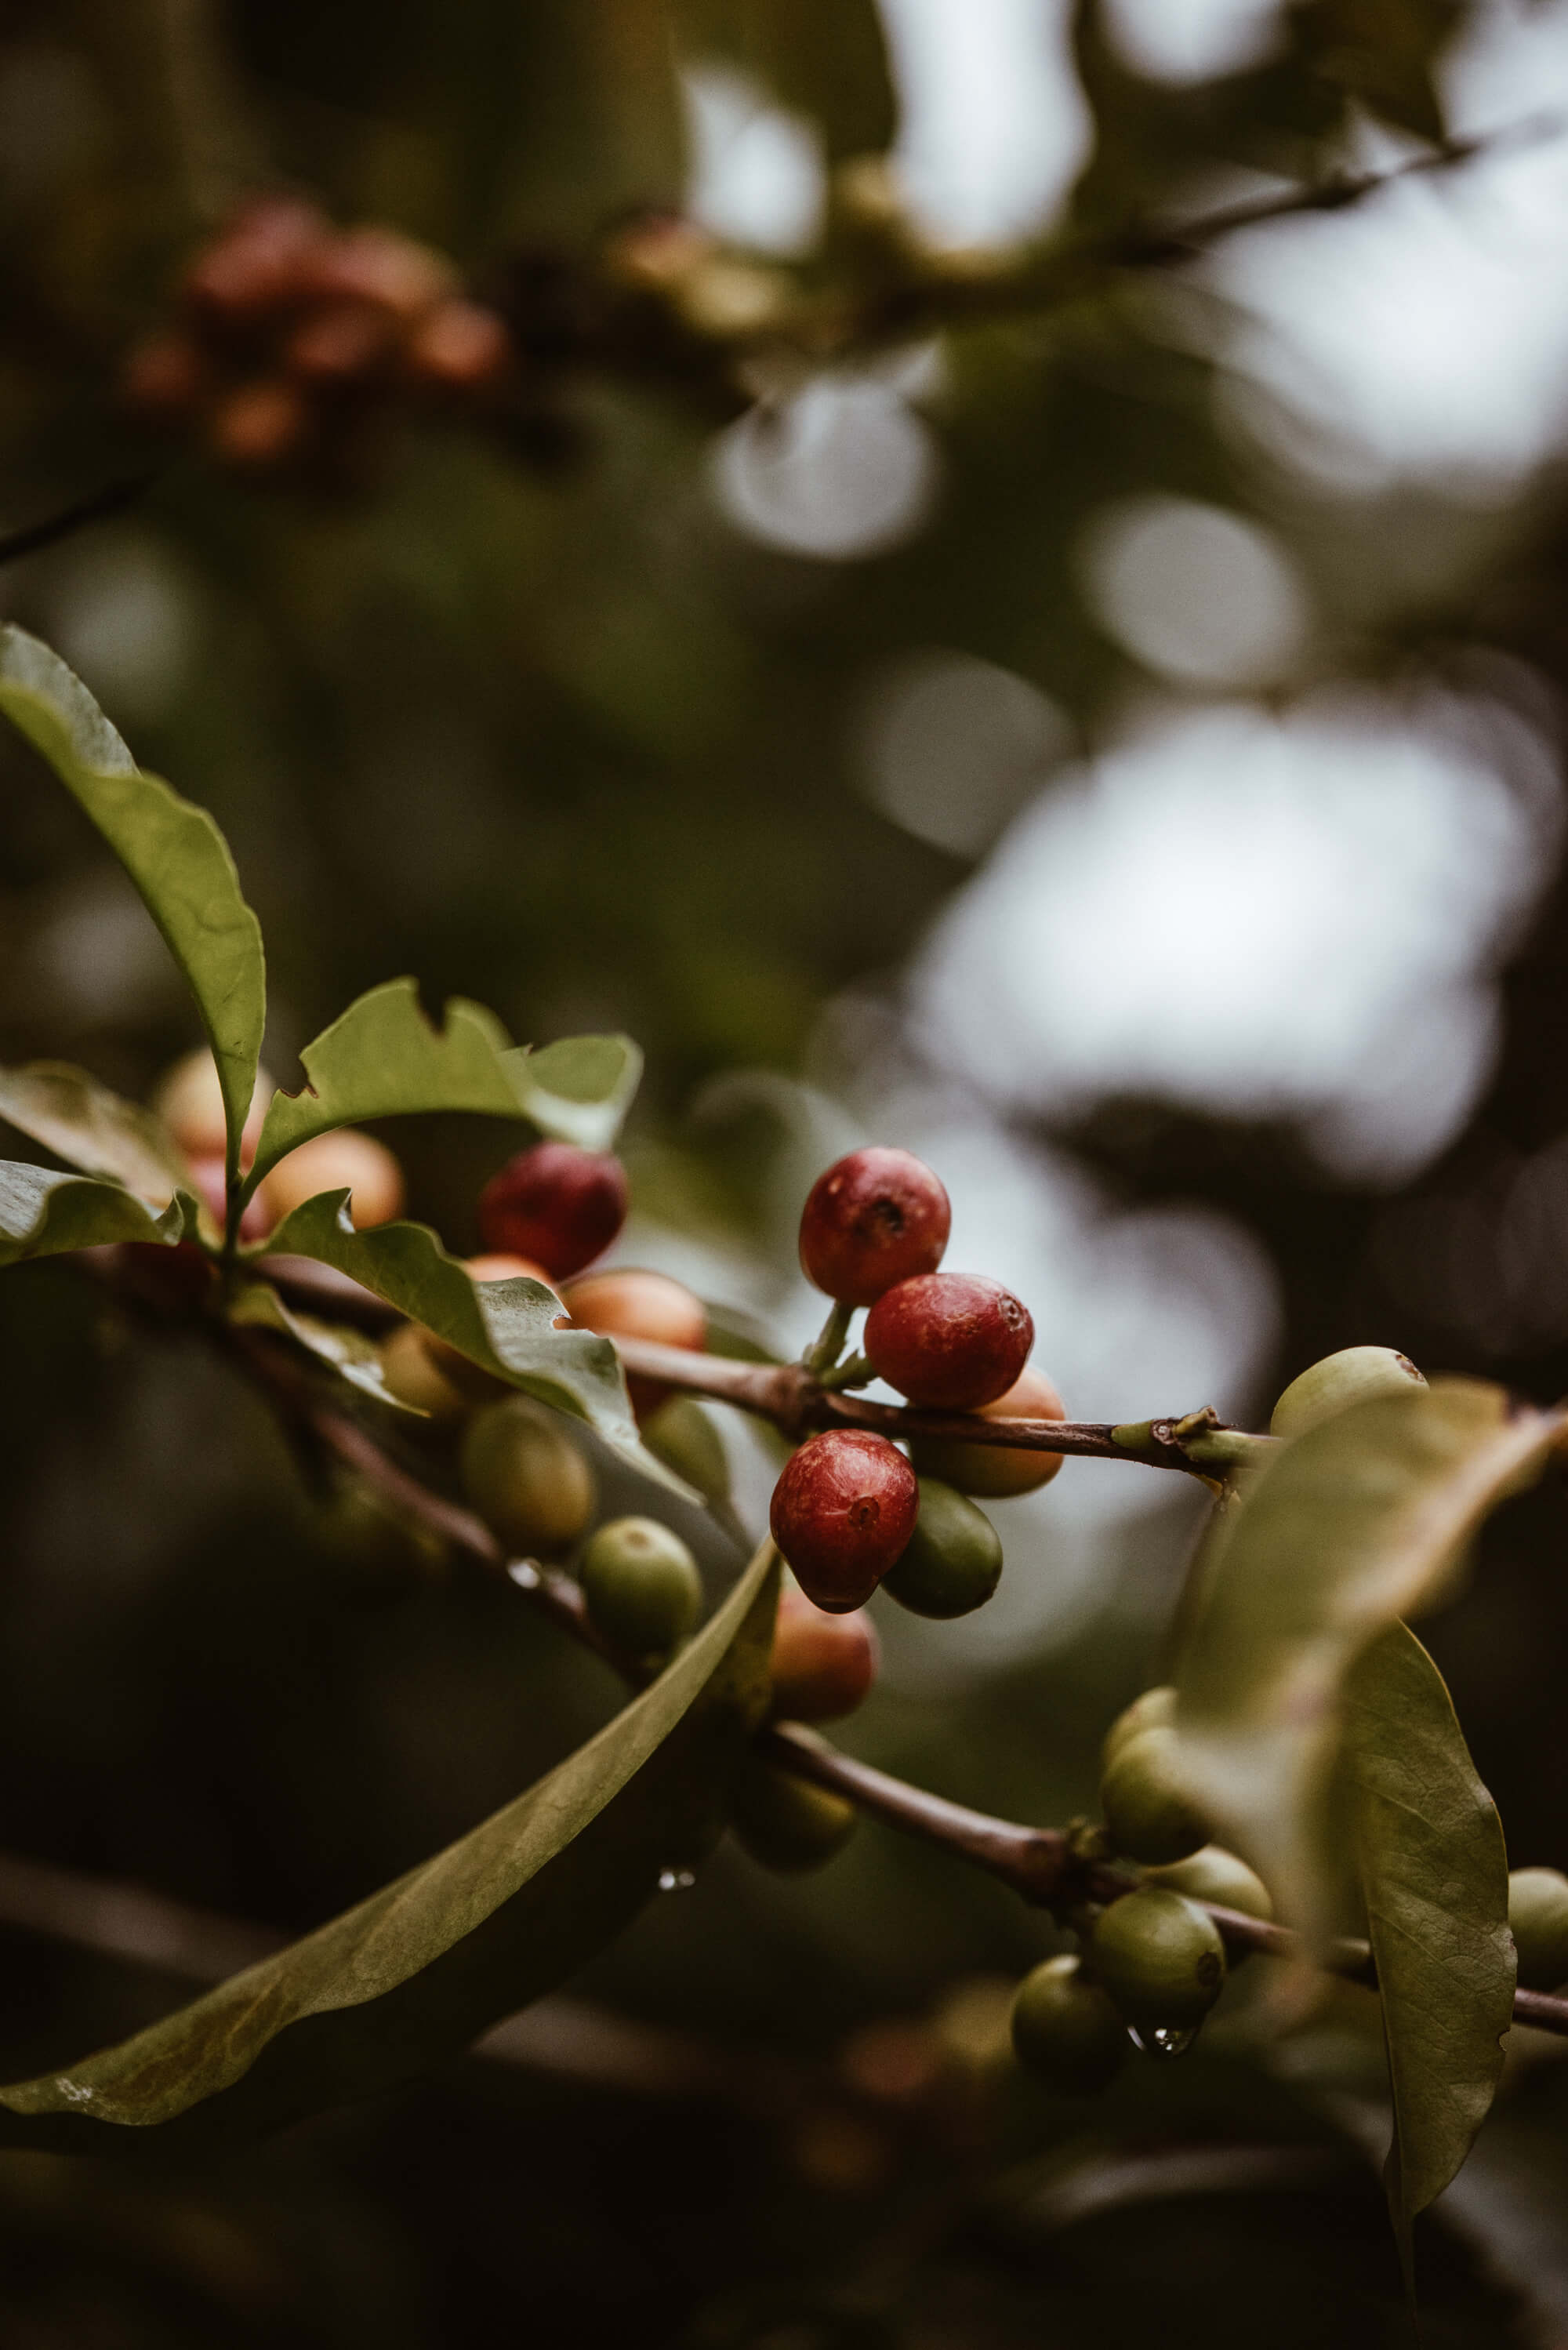 Coffee plant with coffee cherries.